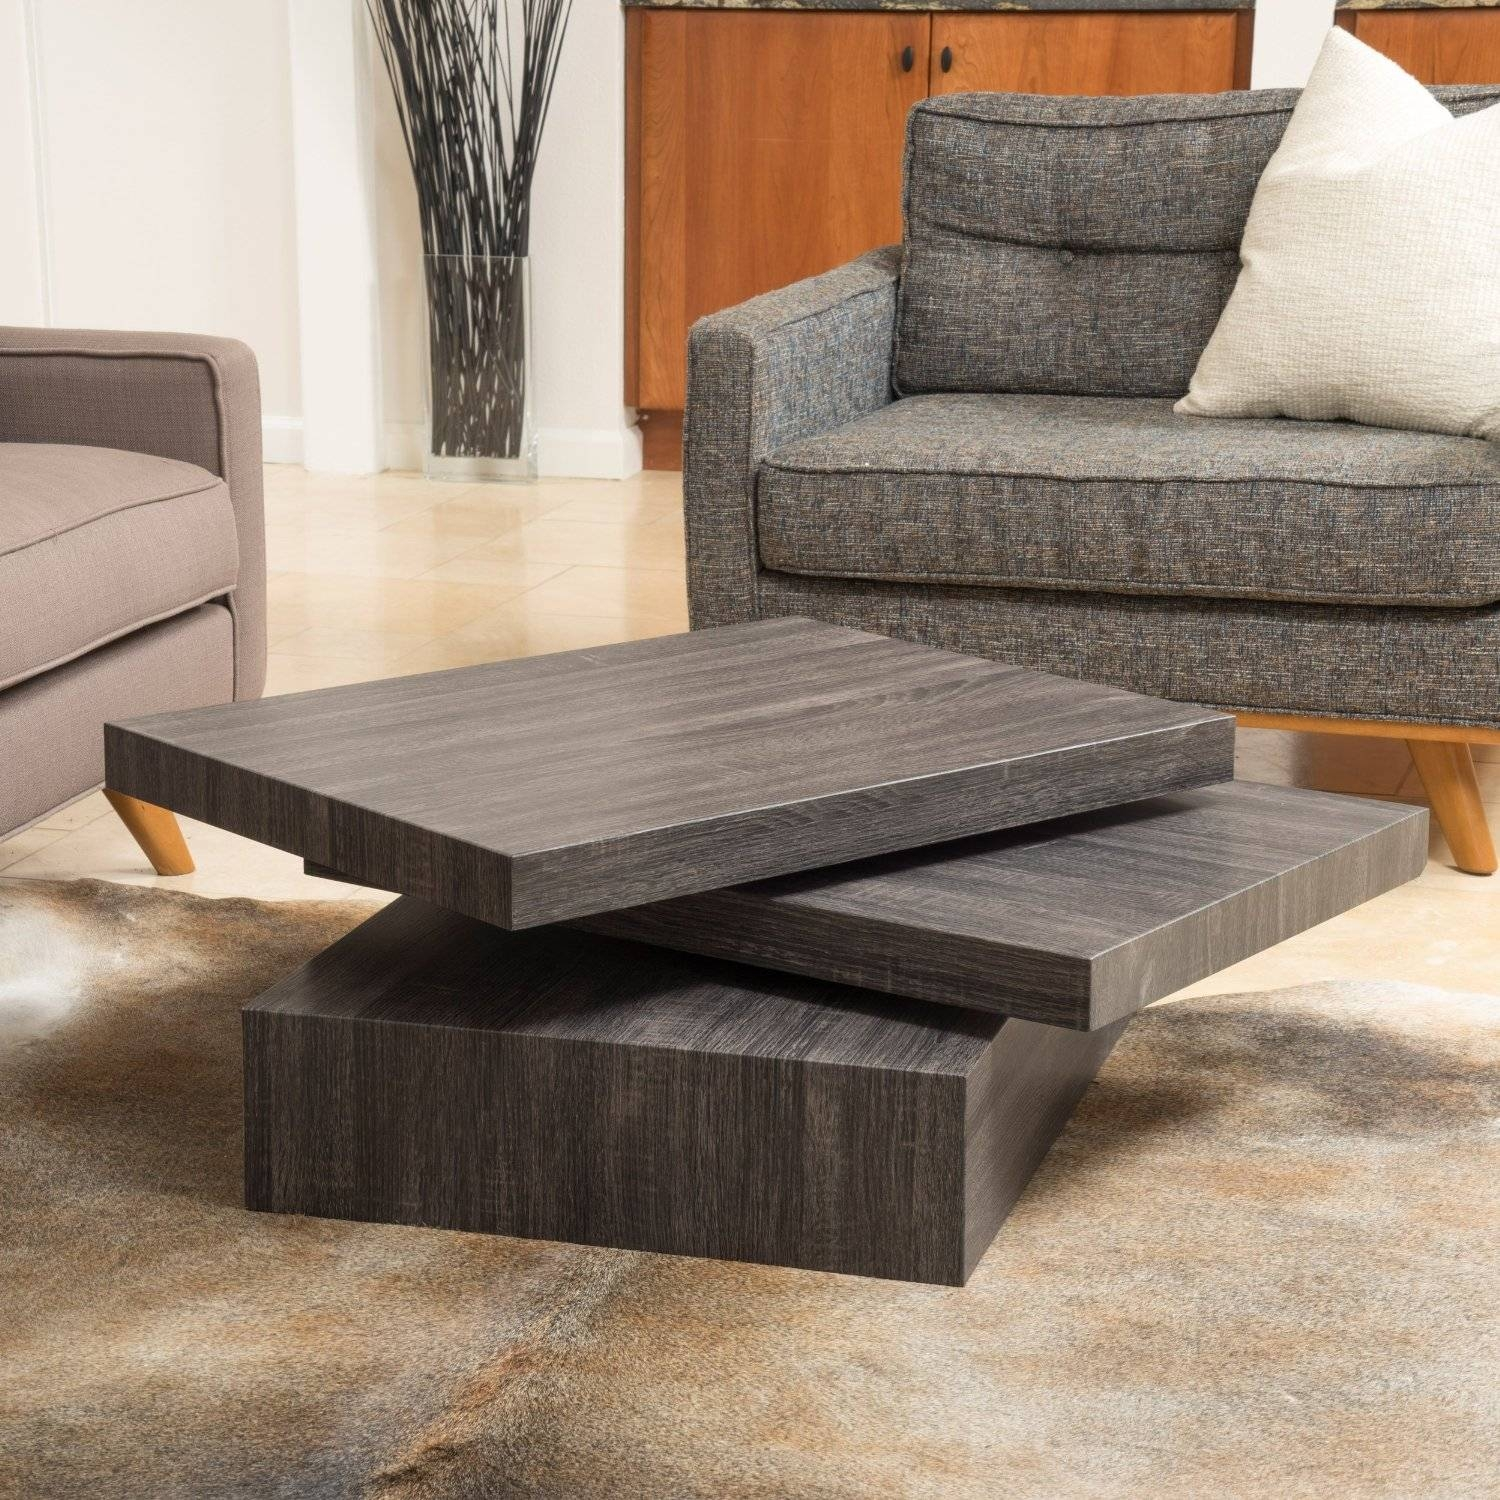 Cheap Coffee Tables Under $100 That Work For Every Style pertaining to Cheap Oak Coffee Tables (Image 5 of 30)